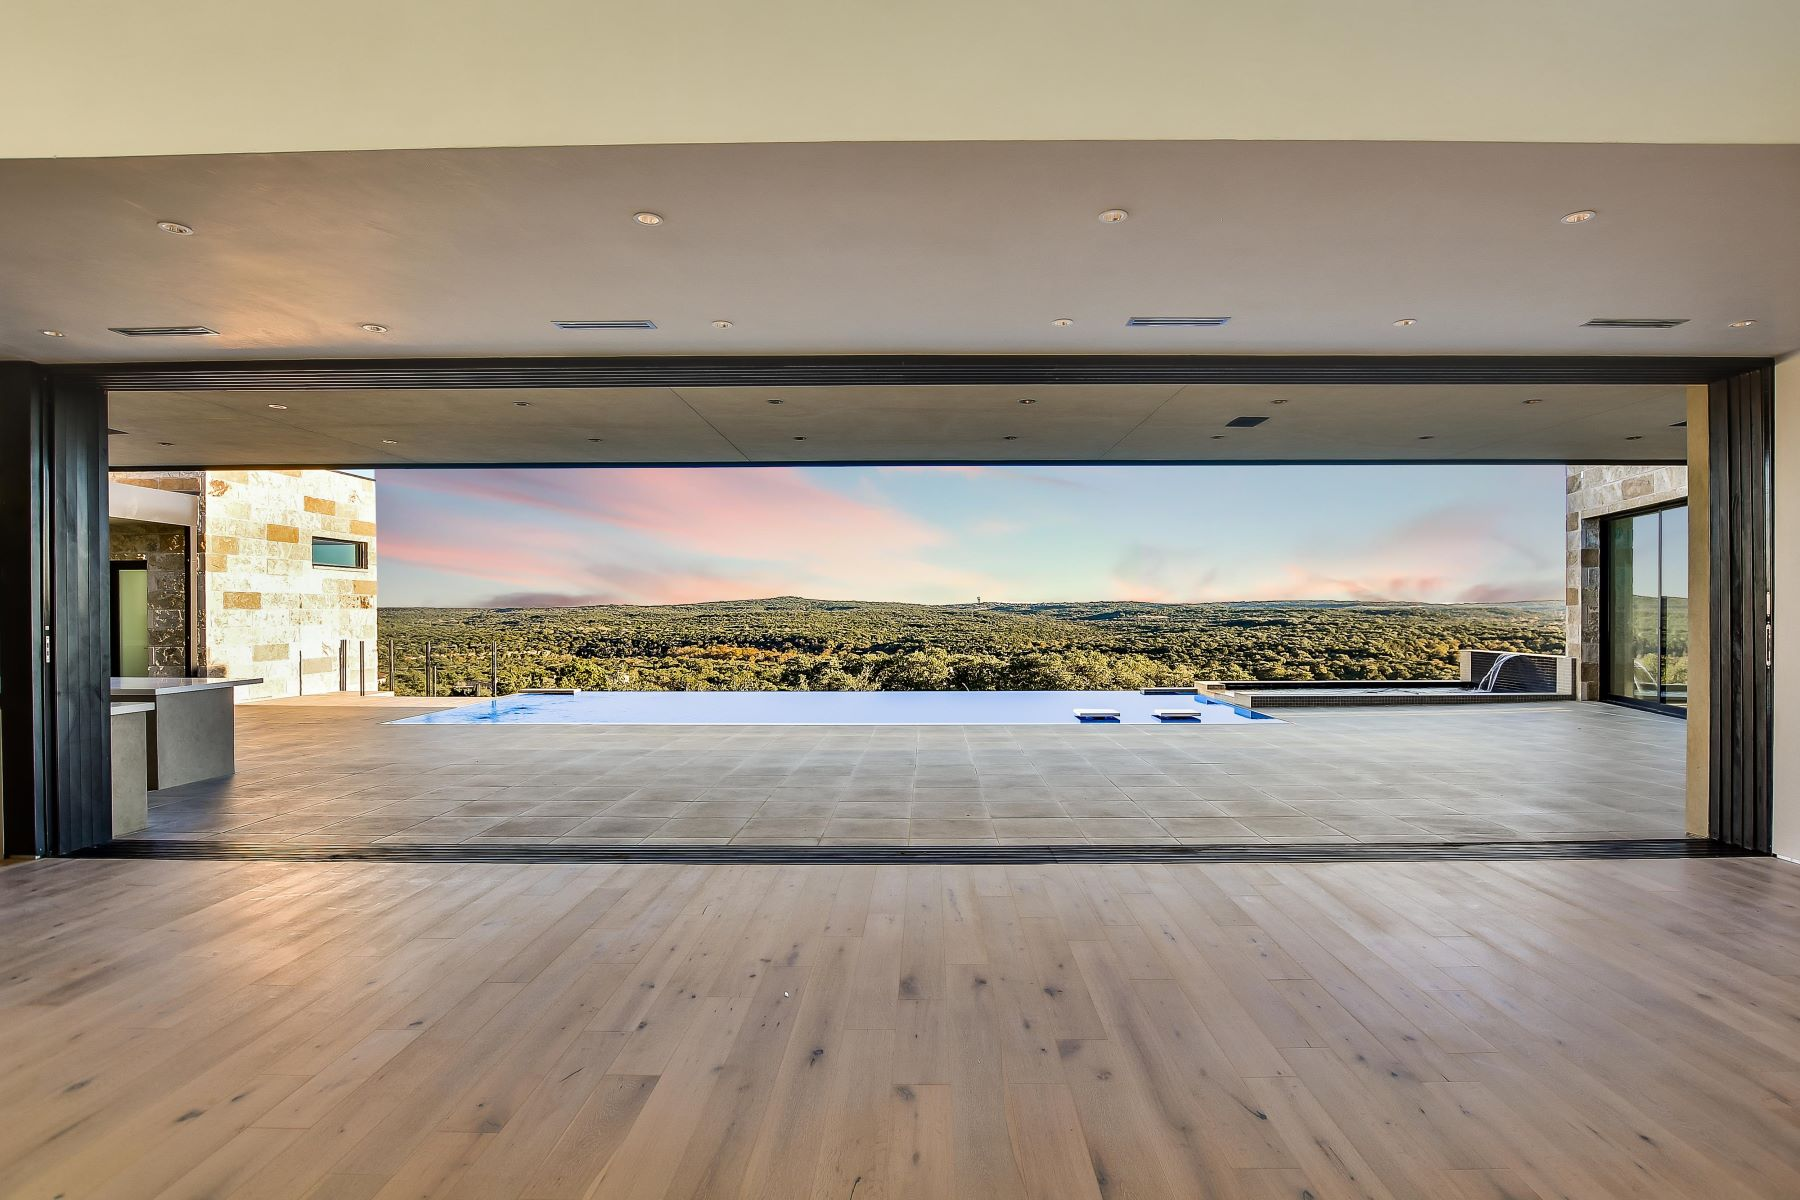 Single Family Homes for Sale at Exquisite Contemporary with Hill Country Views 5516 Laceback Terrace Austin, Texas 78738 United States